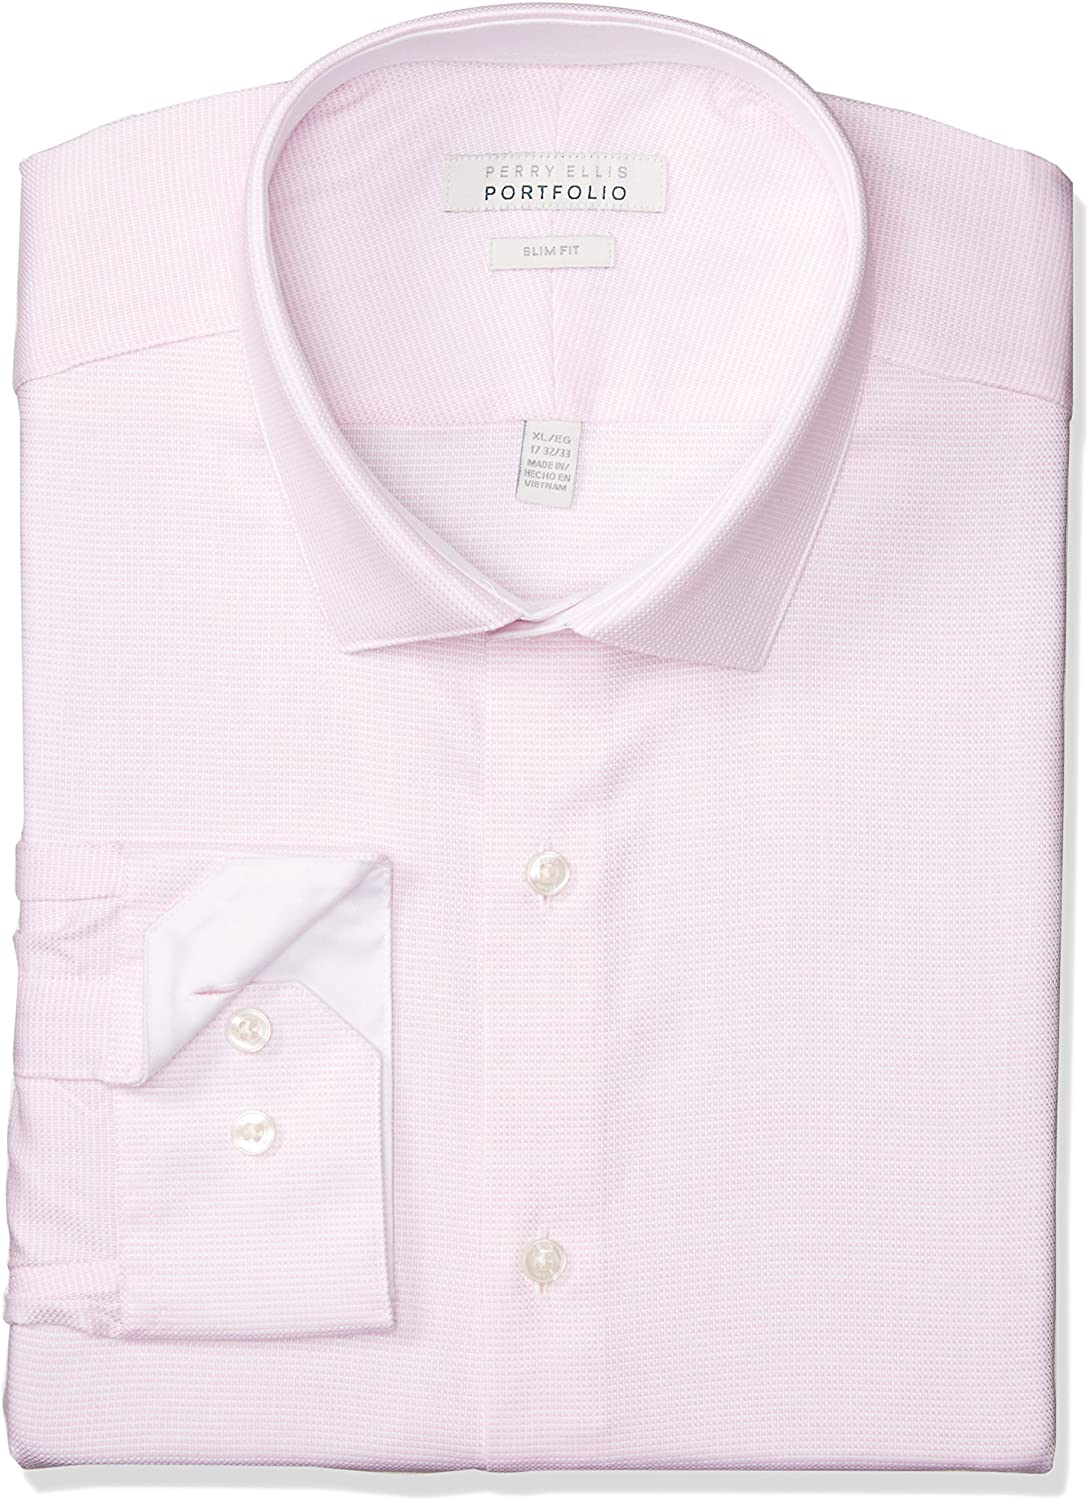 Perry Ellis Men's Slim Fit Wrinkle Free Fashion Dress Shirt